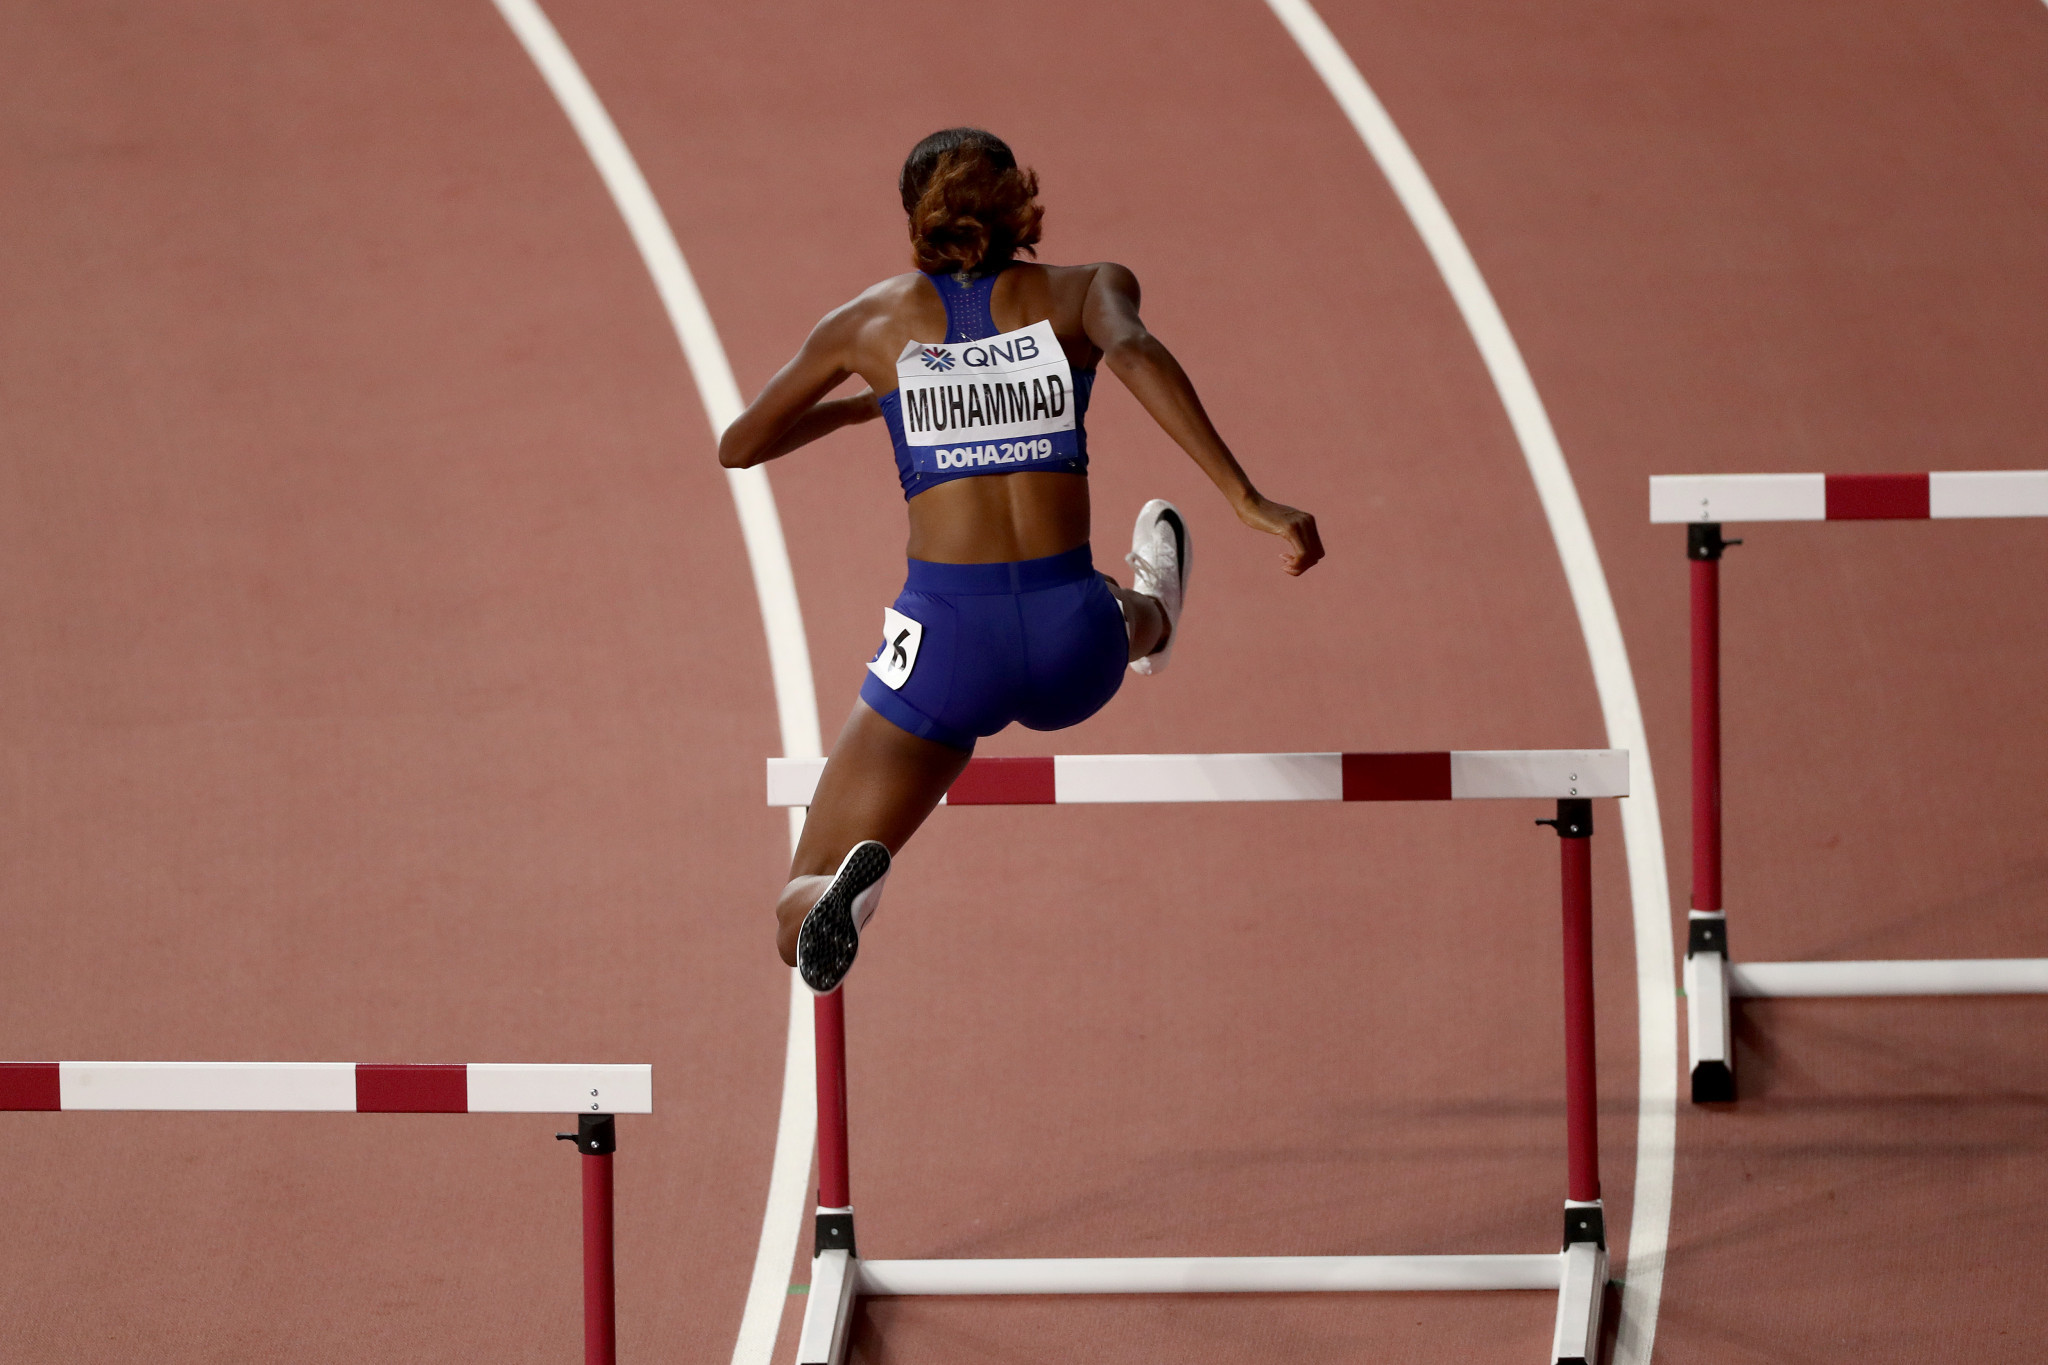 The United States' Dalilah Muhammad broke her own world record to win the women's 400m hurdles ©Getty Images